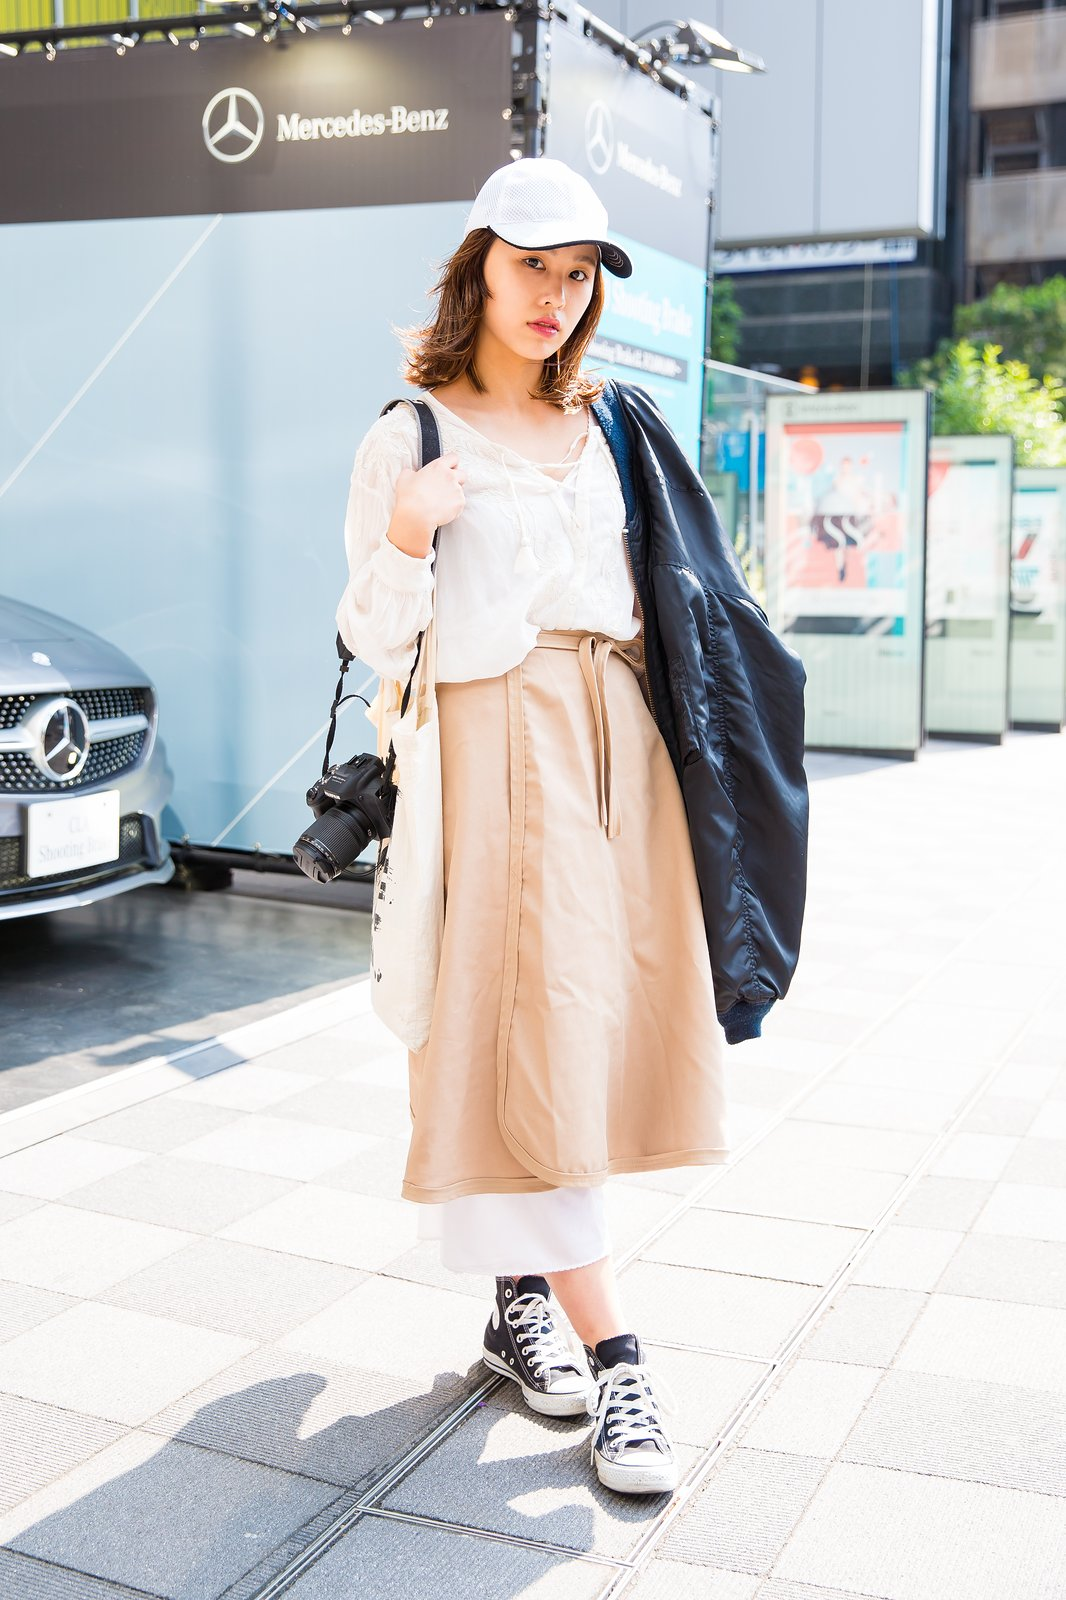 tokyo fashion week, blogger, ootd, outfit